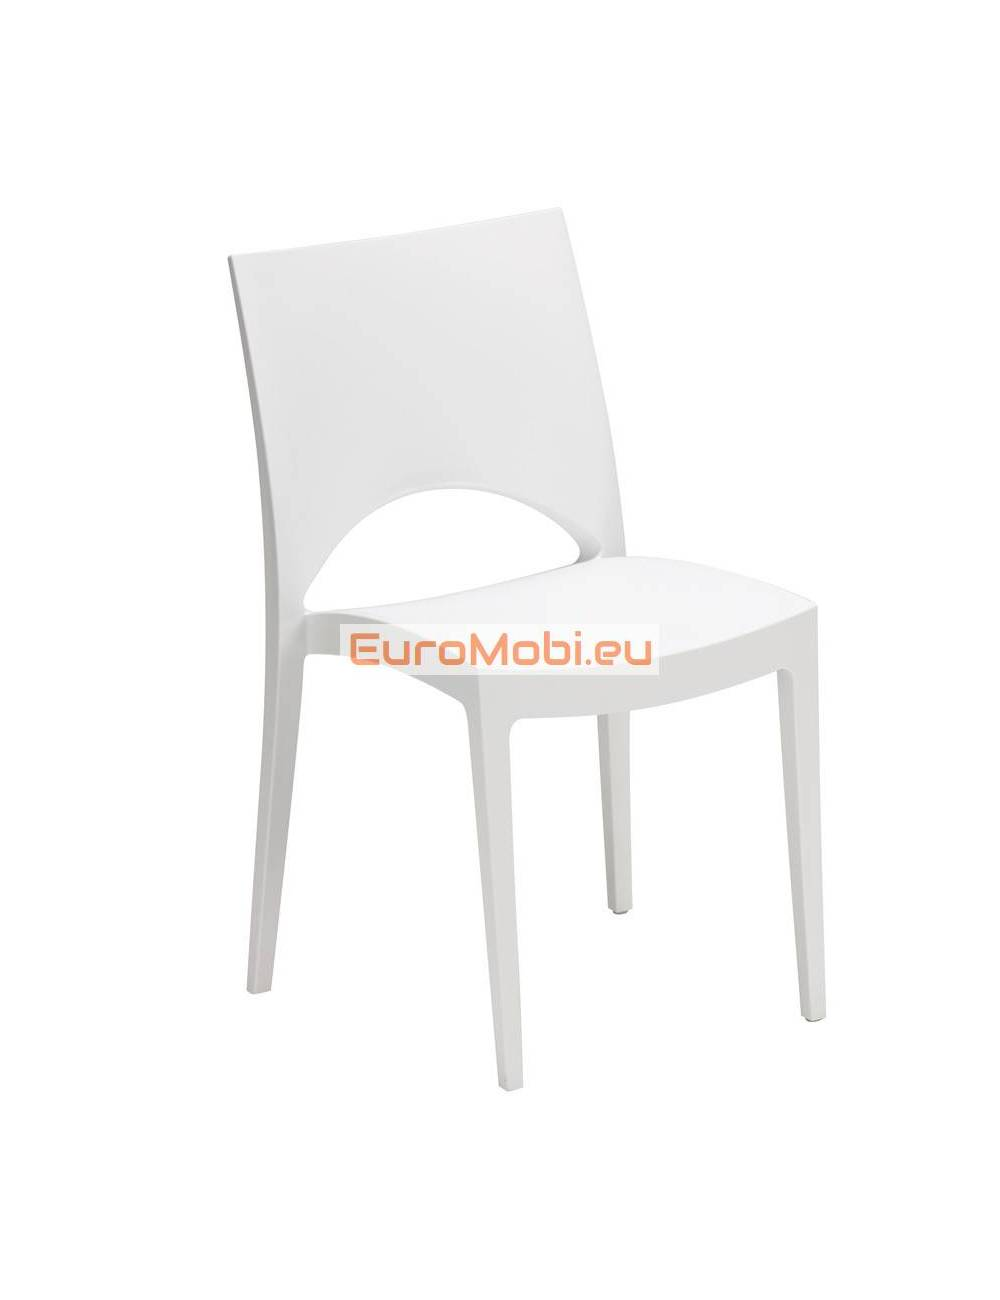 Cuzy stacking chair white